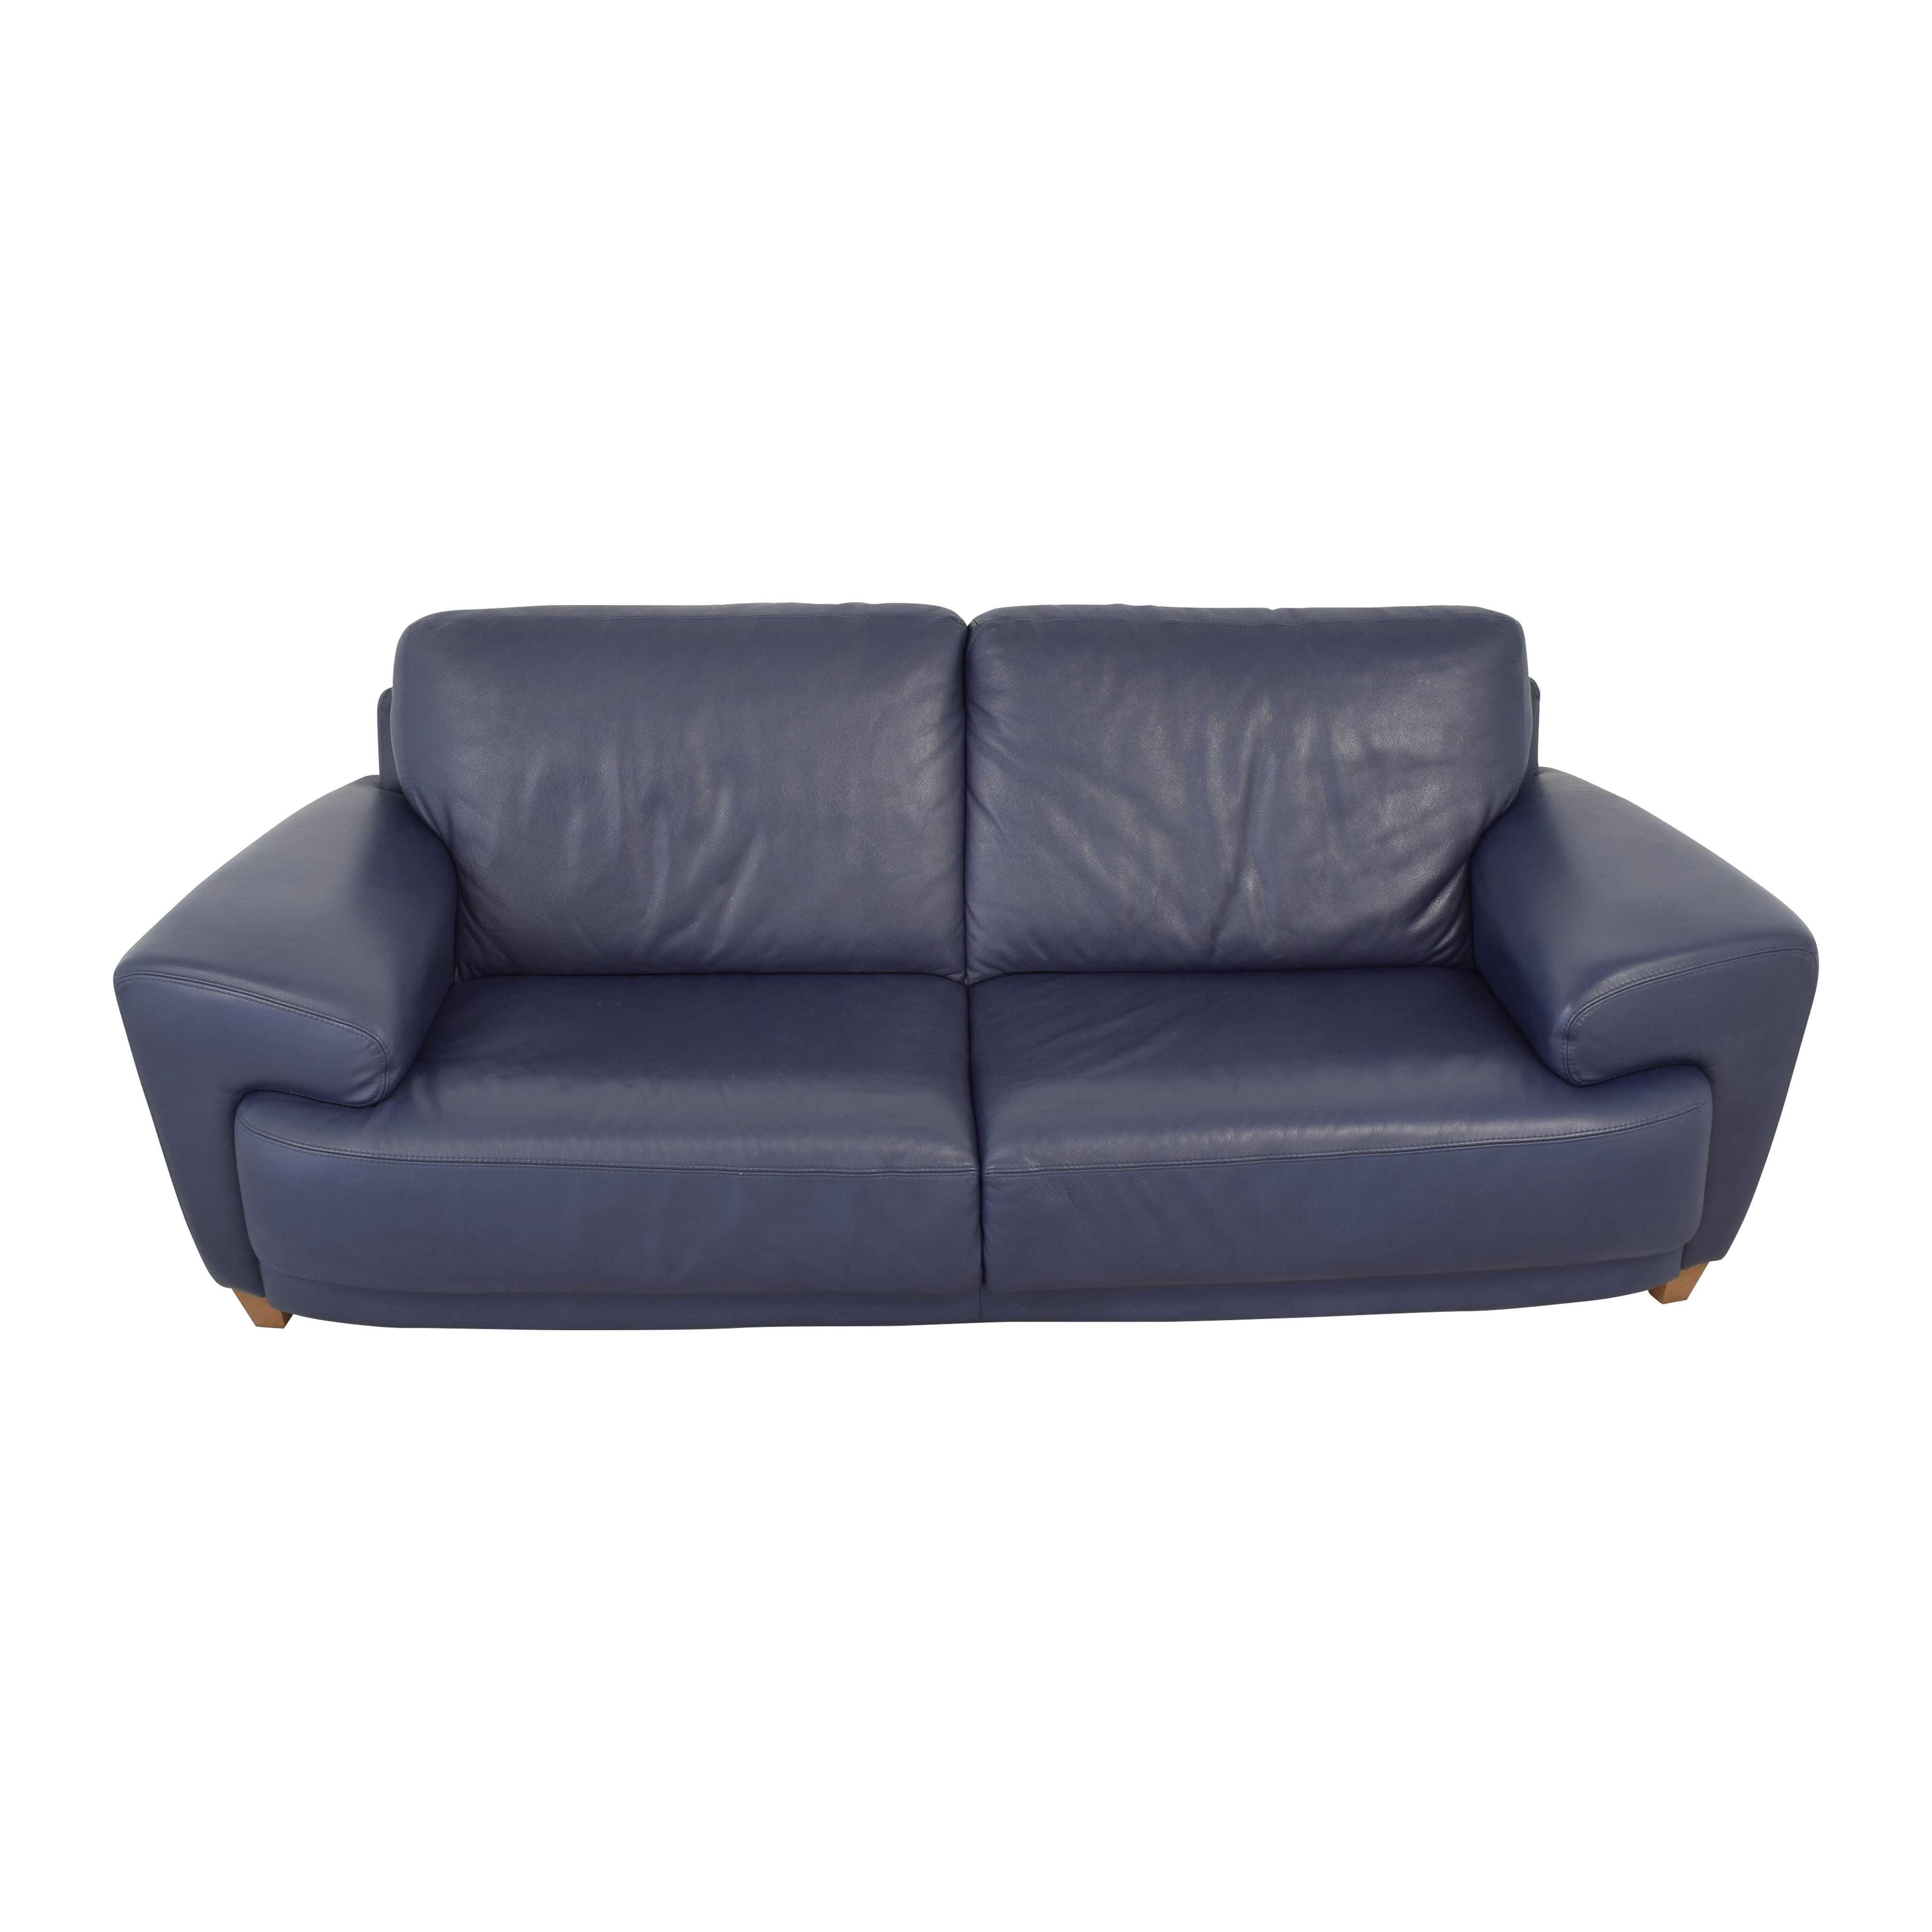 Calia Salotti Sofa sale